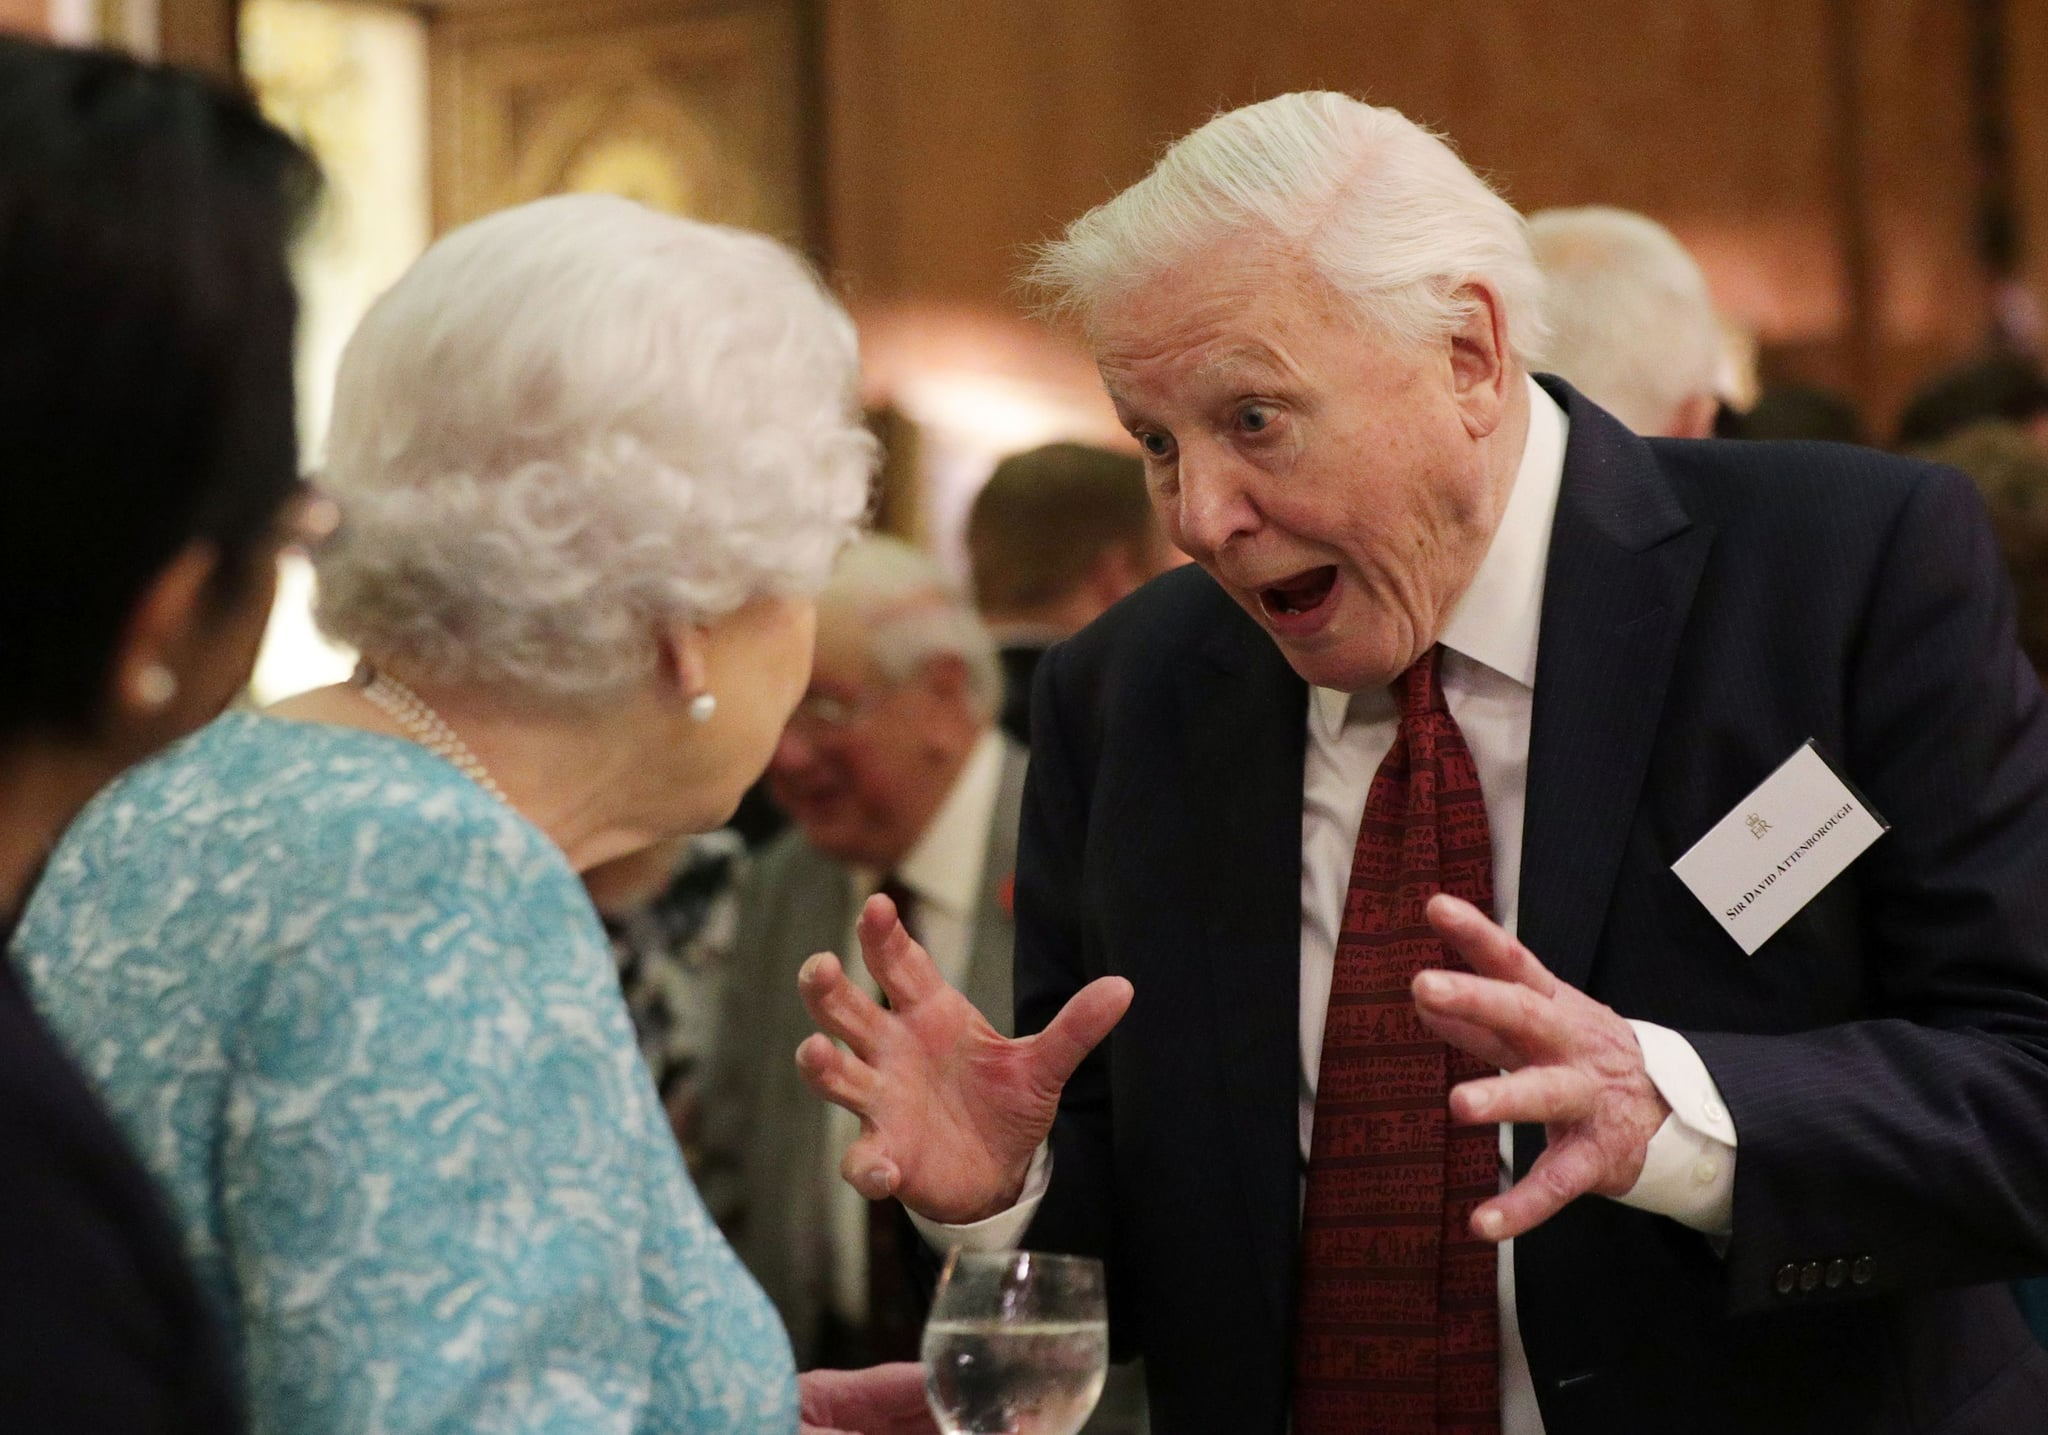 Britain's Queen Elizabeth II (L) reacts as she talks with television presenter David Attenborough during an event at Buckingham Palace in central London on November 15, 2016, to showcase forestry projects that have been dedicated to the new conservation initiative - The Queen's Commonwealth Canopy (QCC). / AFP / POOL / Yui Mok        (Photo credit should read YUI MOK/AFP/Getty Images)